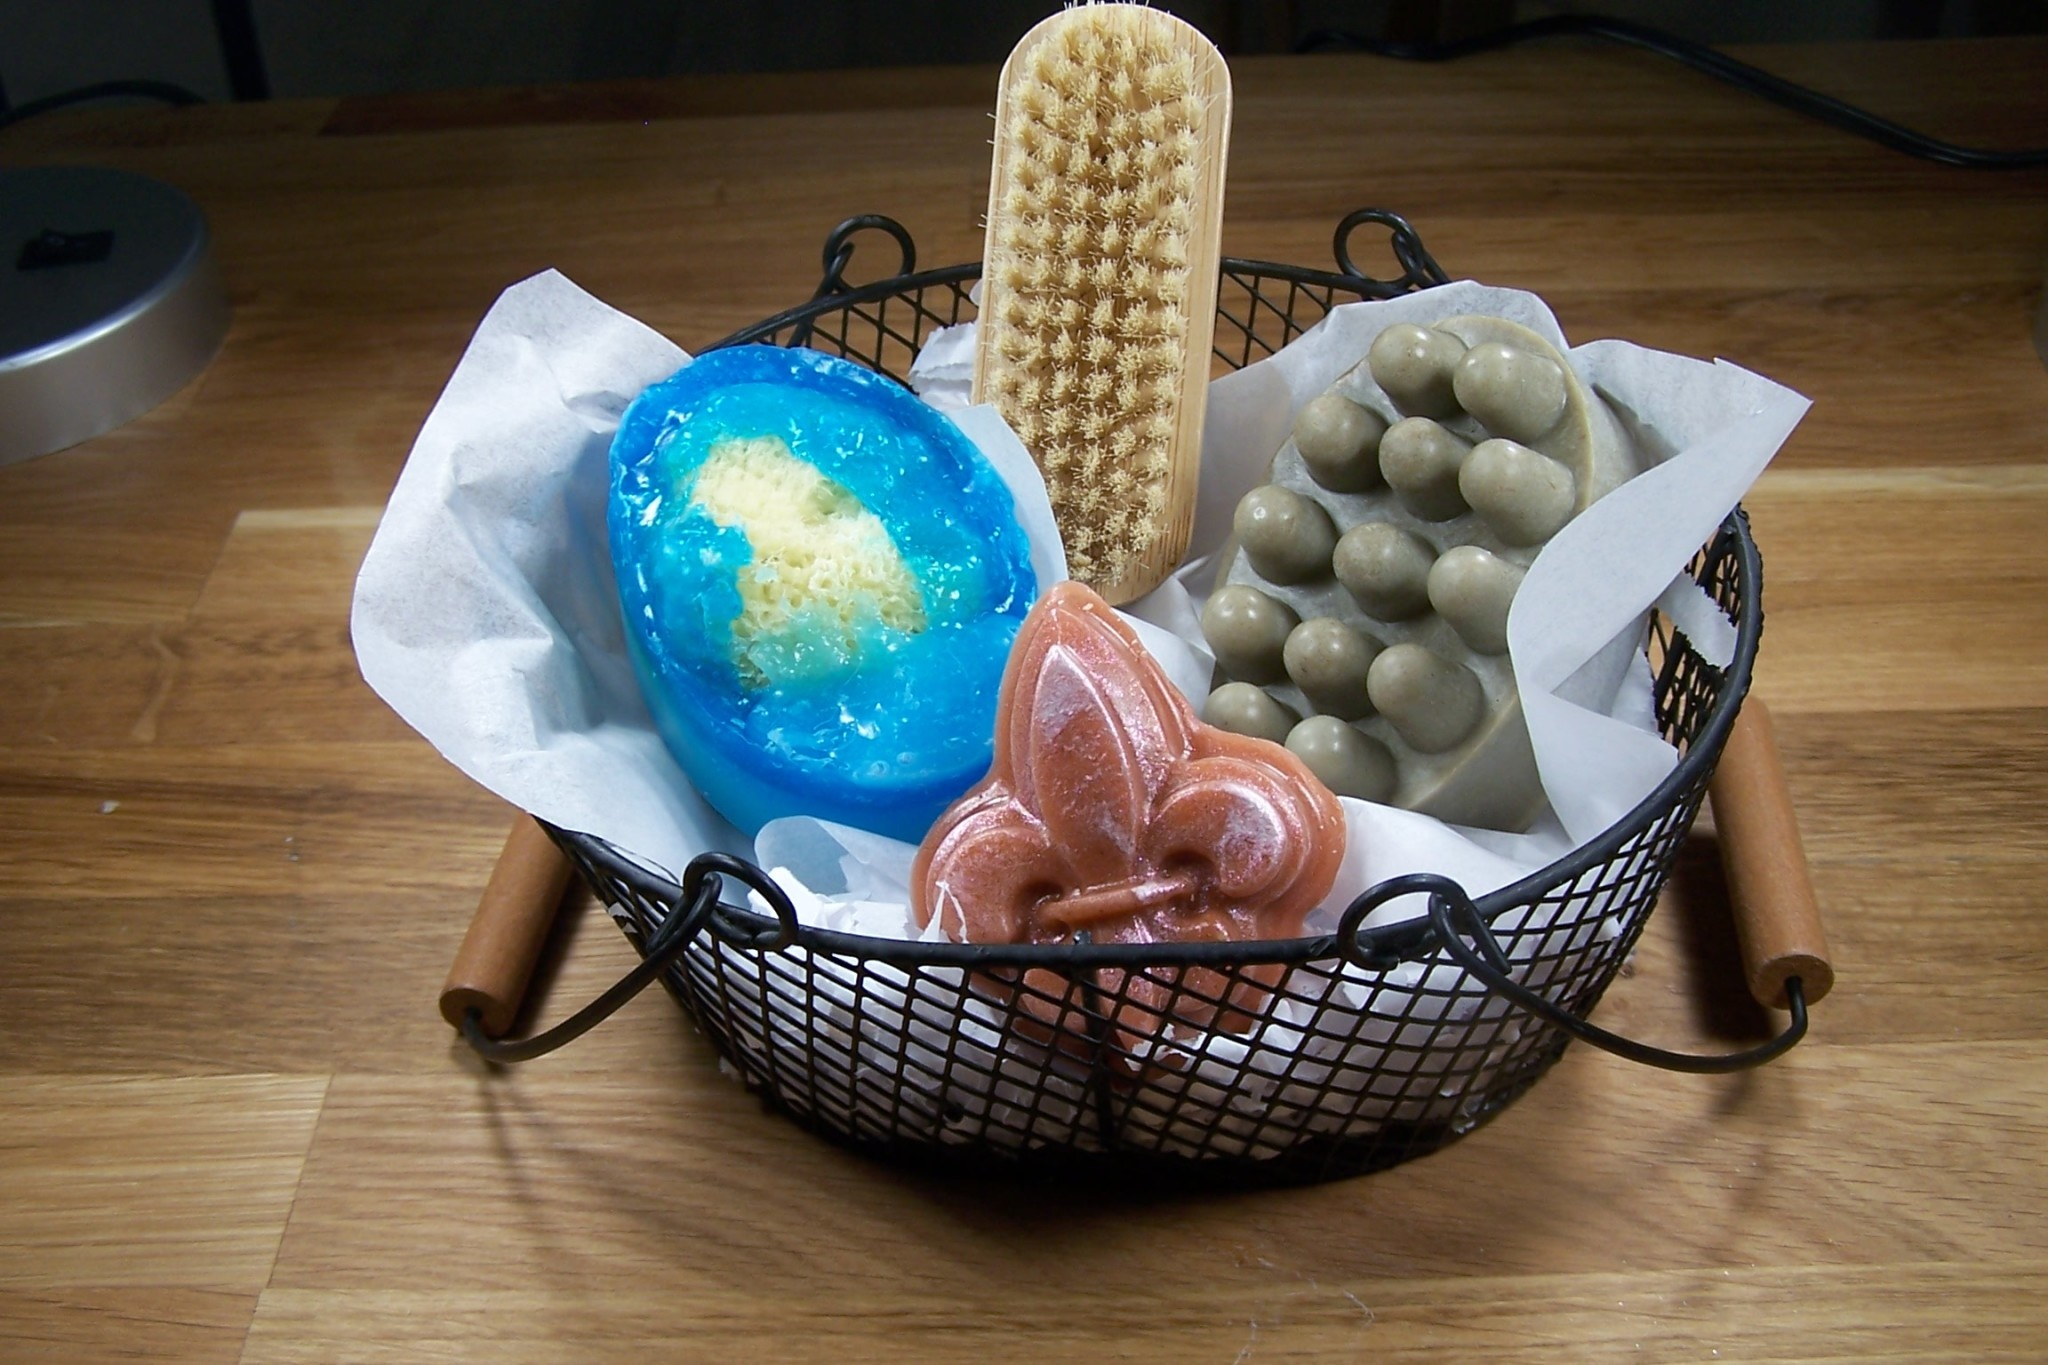 sea sponge, scrub bar, sm soap, brush, basket